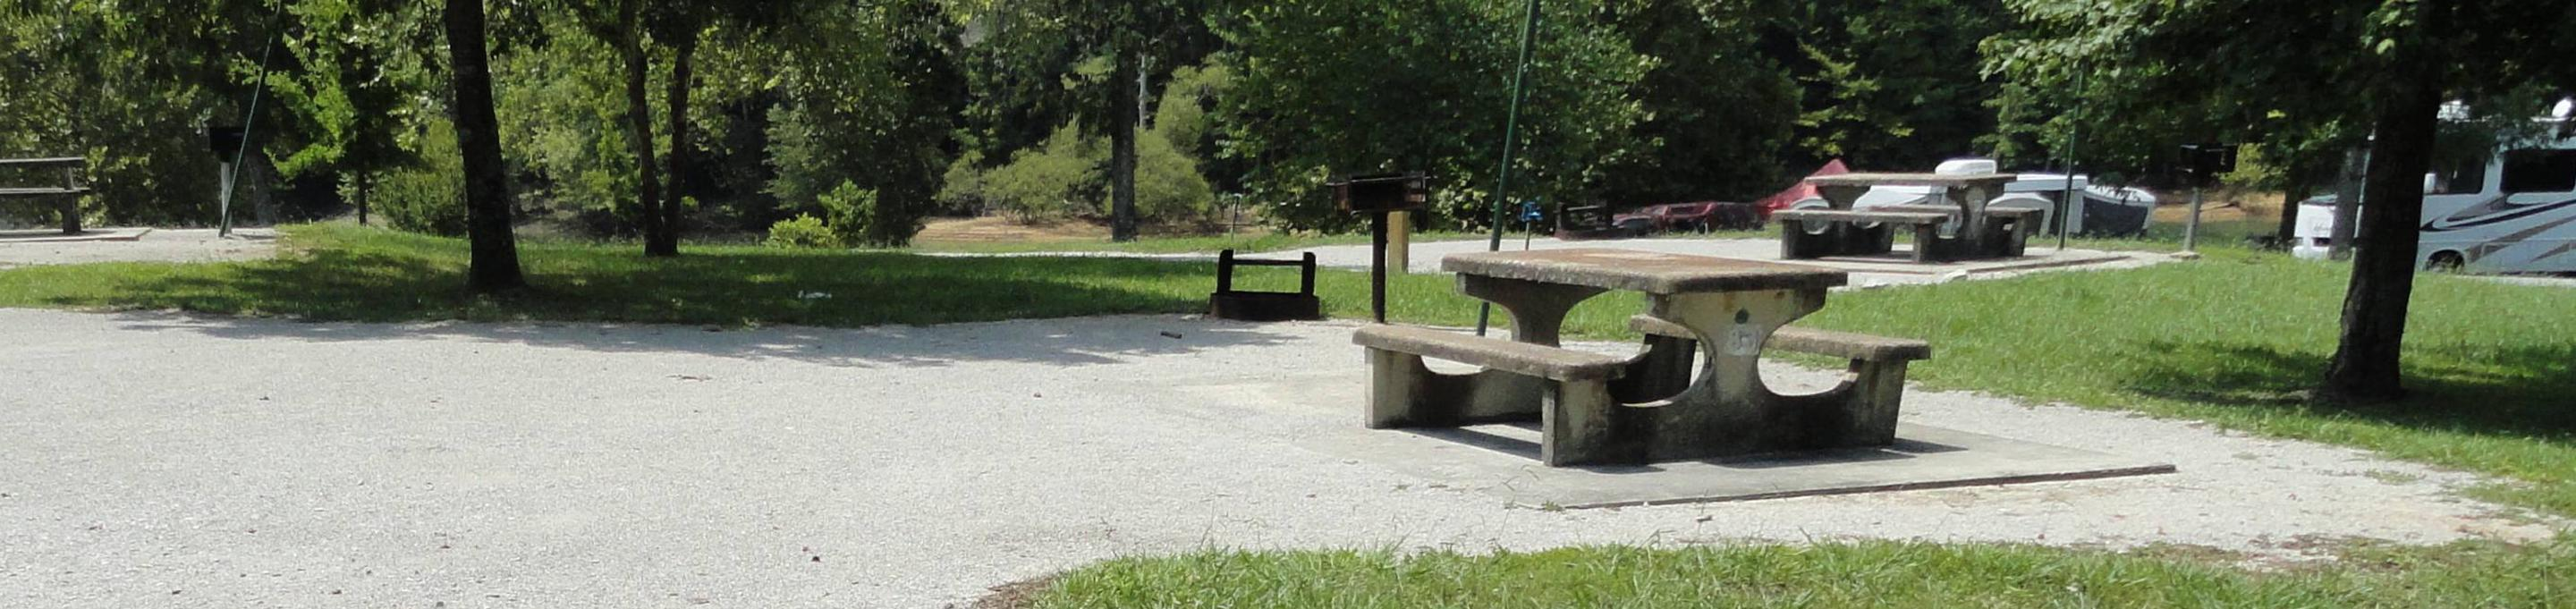 LILLYDALE CAMPGROUND SITE # 83